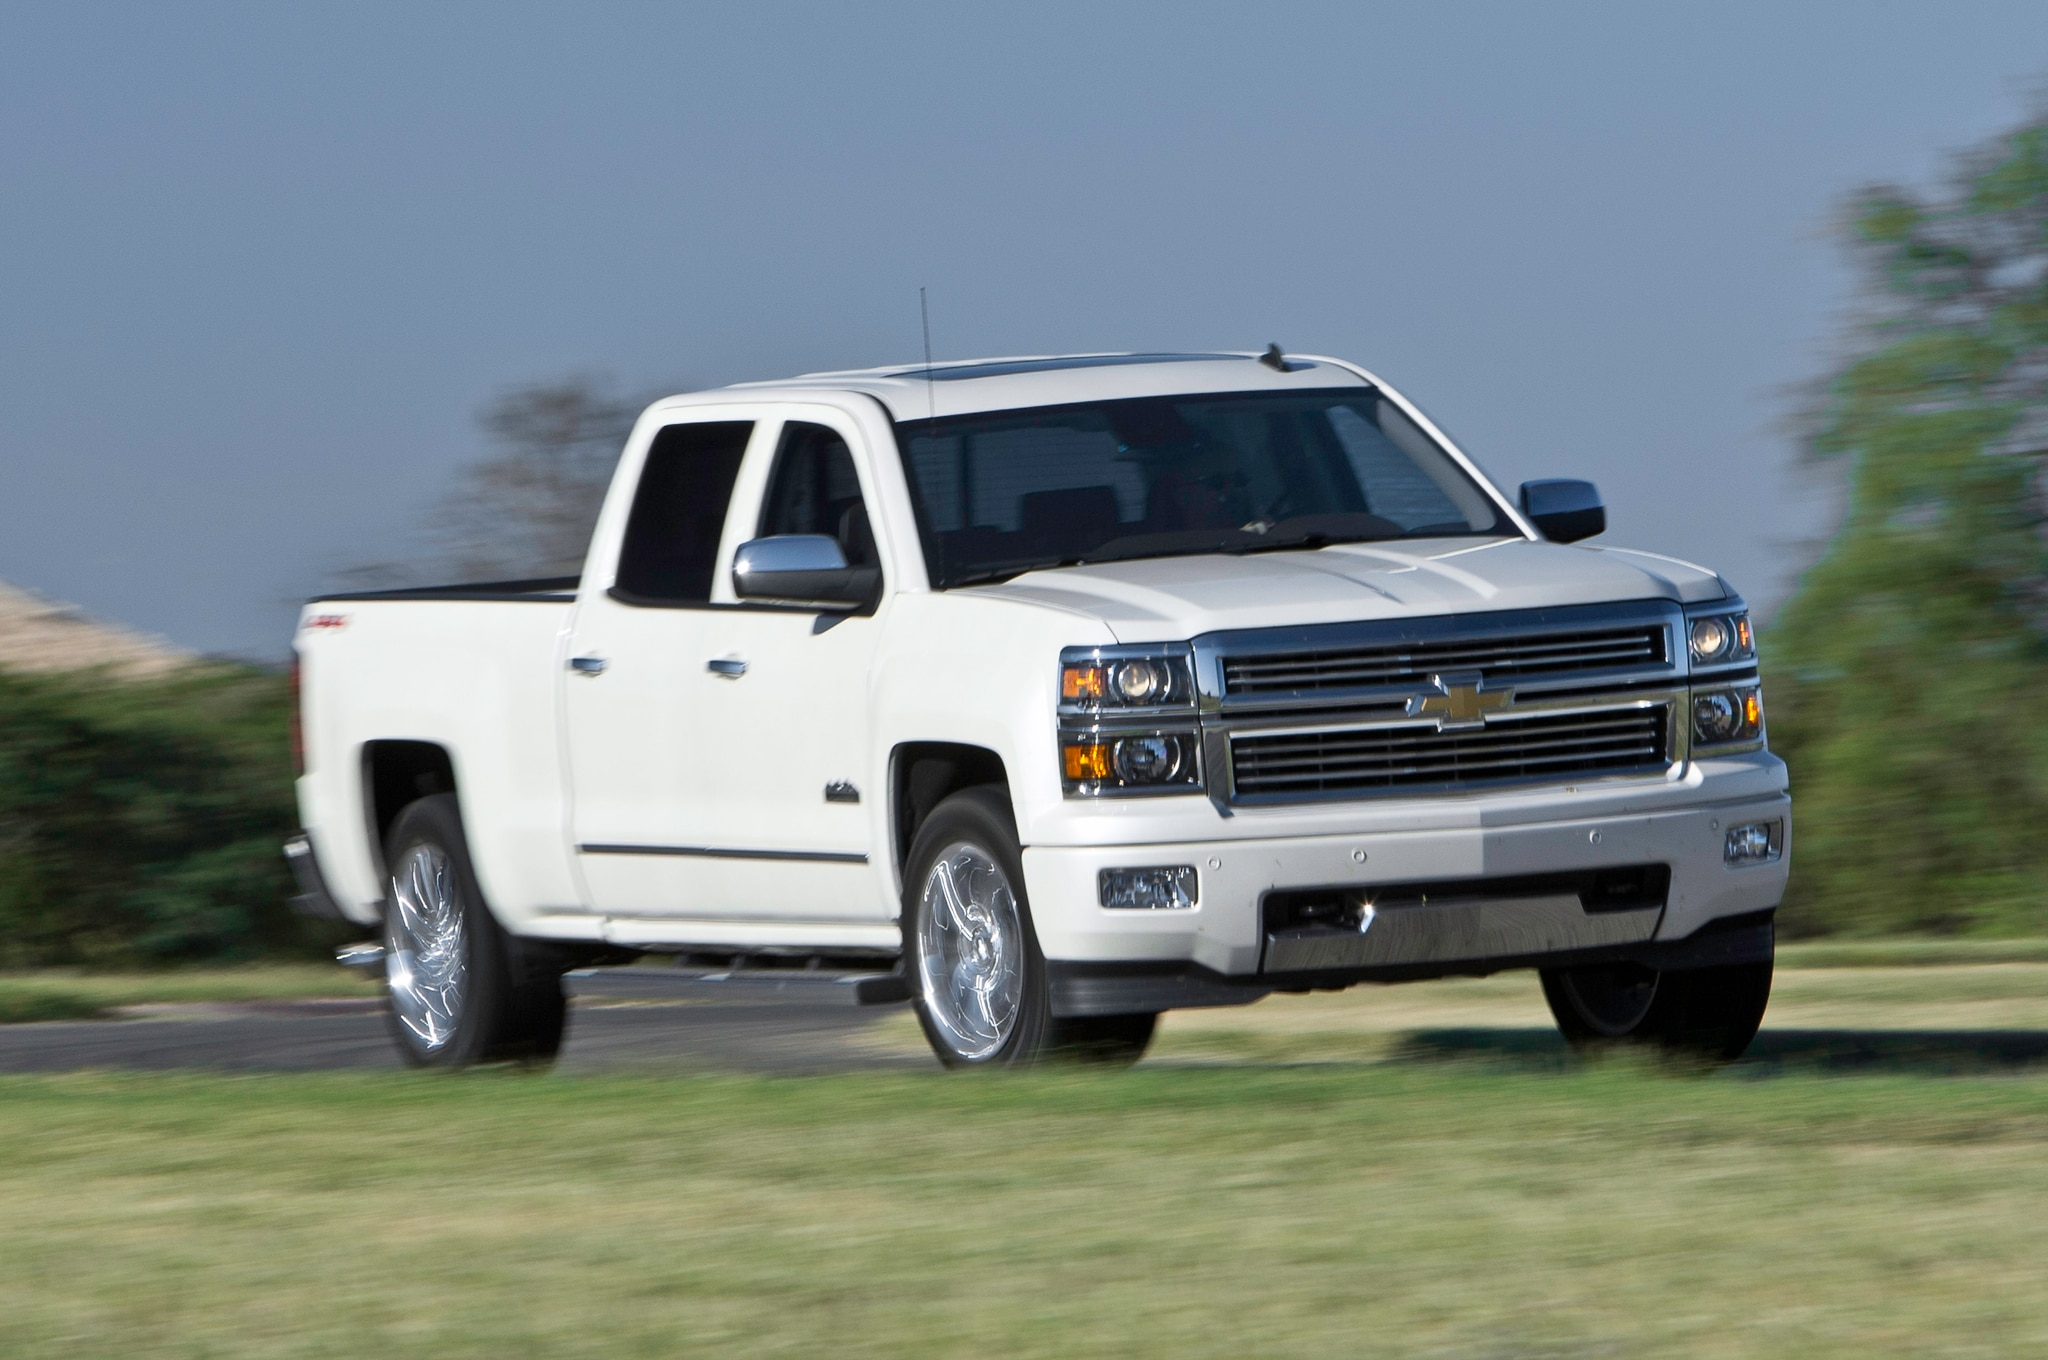 2014 Chevrolet Silverado High Country 4x4 First Test Truck Trend